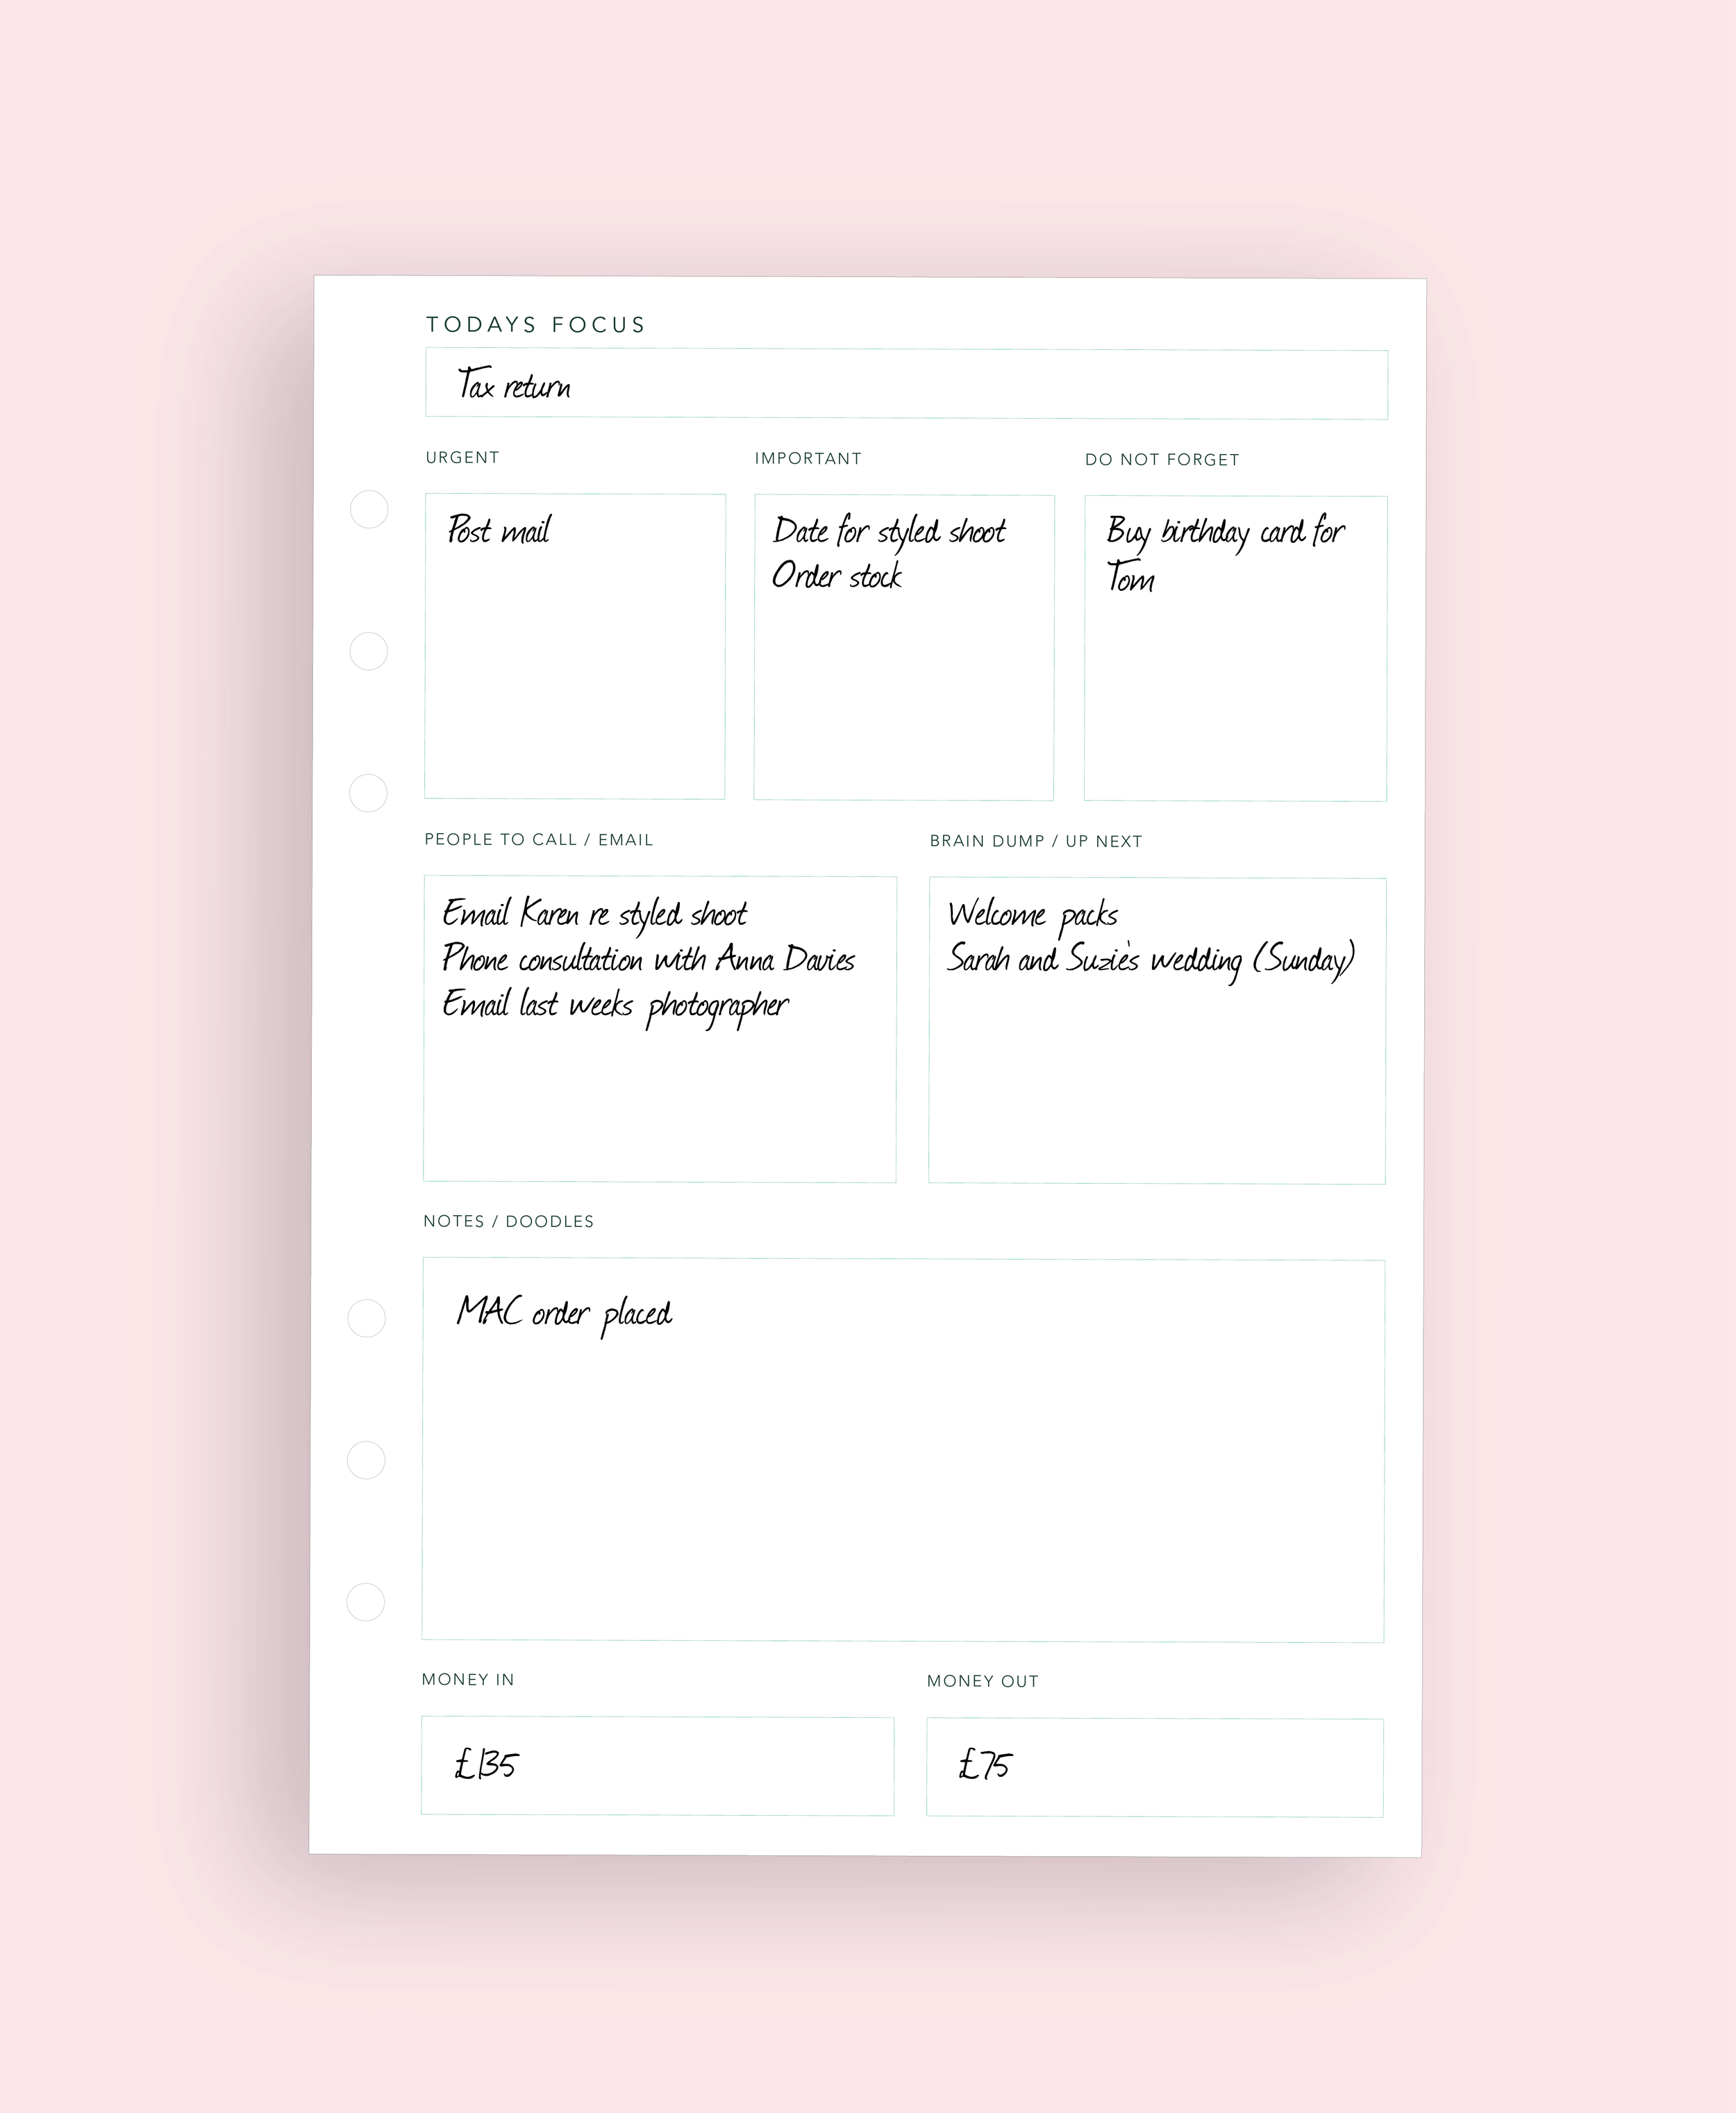 Etsy_Layout-03.png